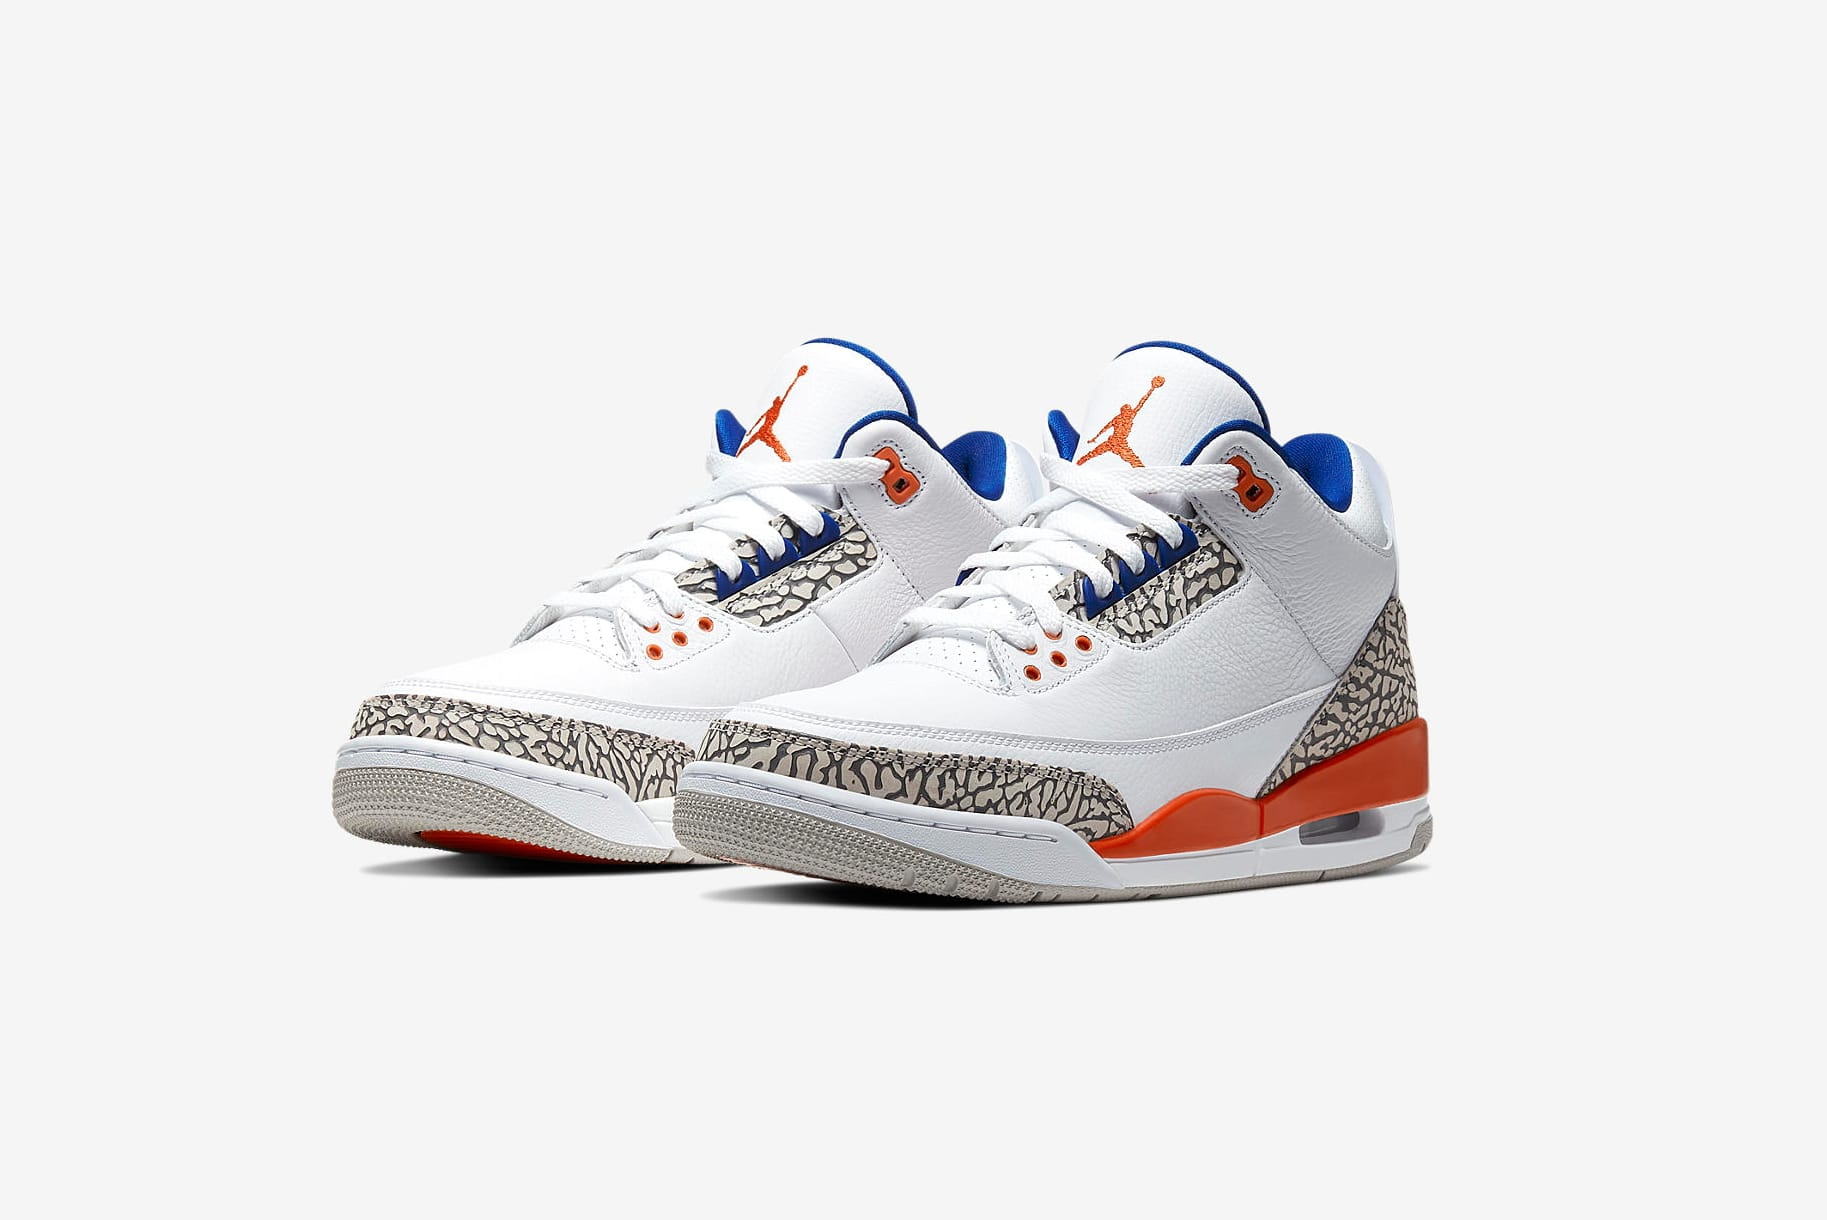 wholesale dealer f0cbd 14944 END. Features | Nike Air Jordan III Retro 'Knicks ...